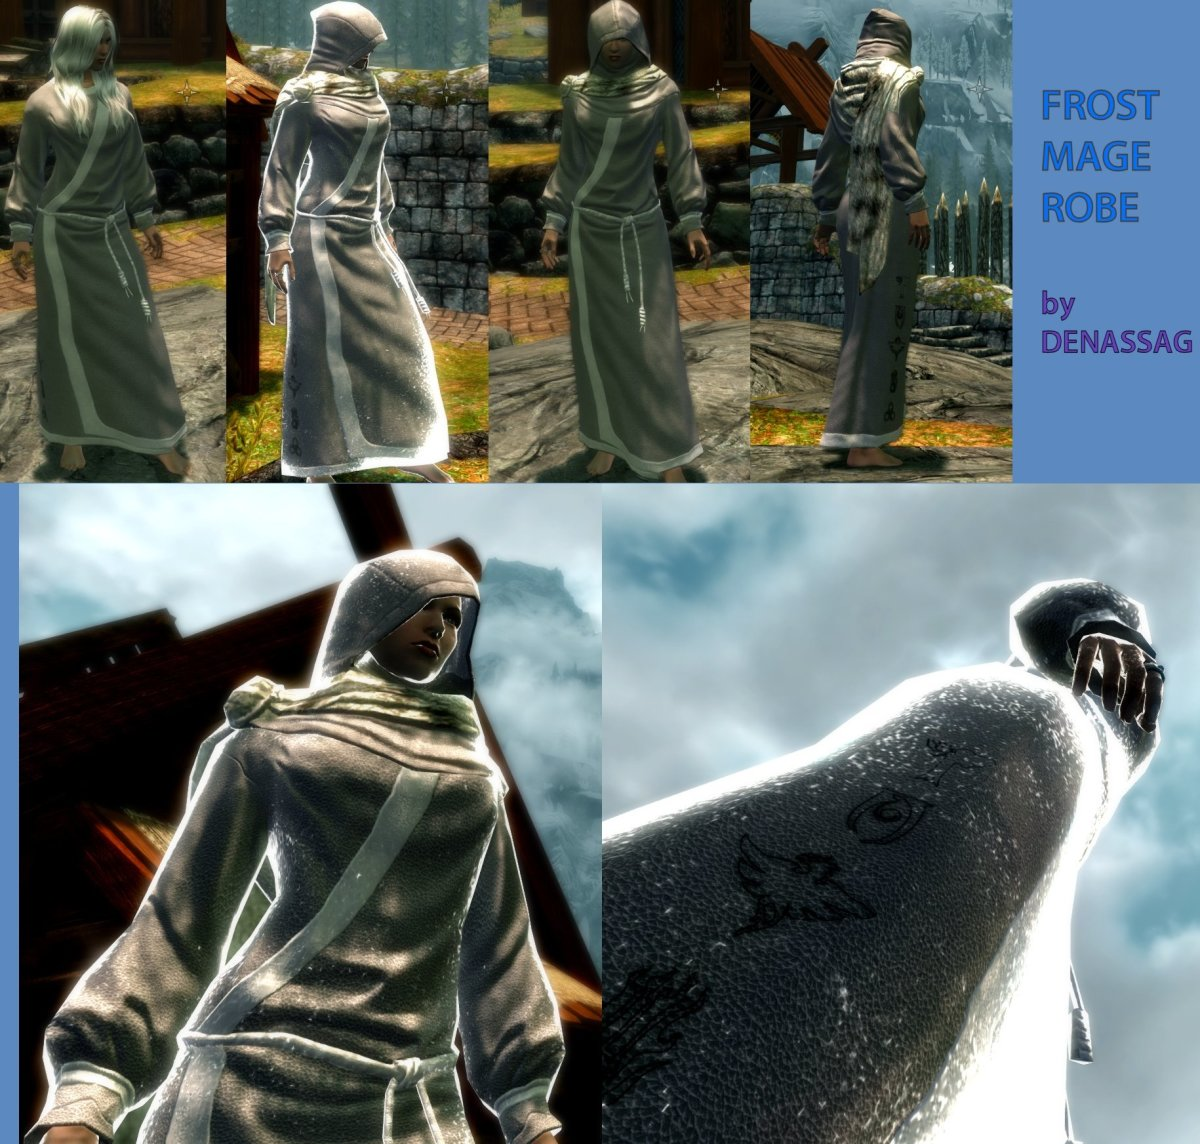 Beautiful Frost Mage robe replacer by DenassaG, an excellent Skyrim clothing mod.